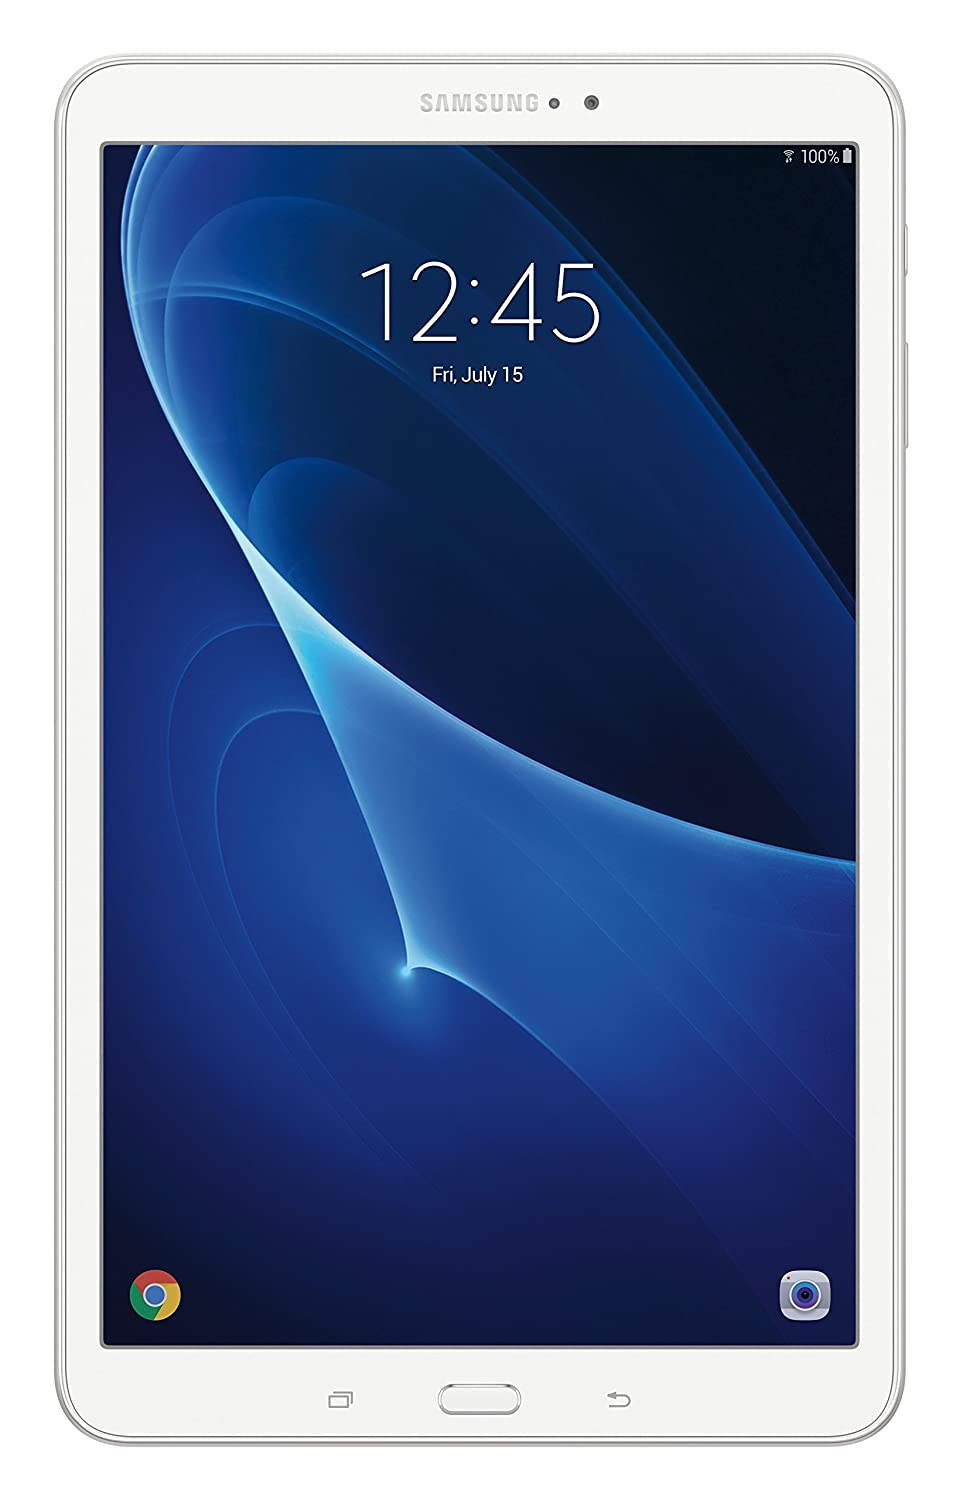 Amazon samsung galaxy tab a 101 16 gb wifi tablet white amazon samsung galaxy tab a 101 16 gb wifi tablet white sm t580nzwaxar computers accessories fandeluxe Image collections